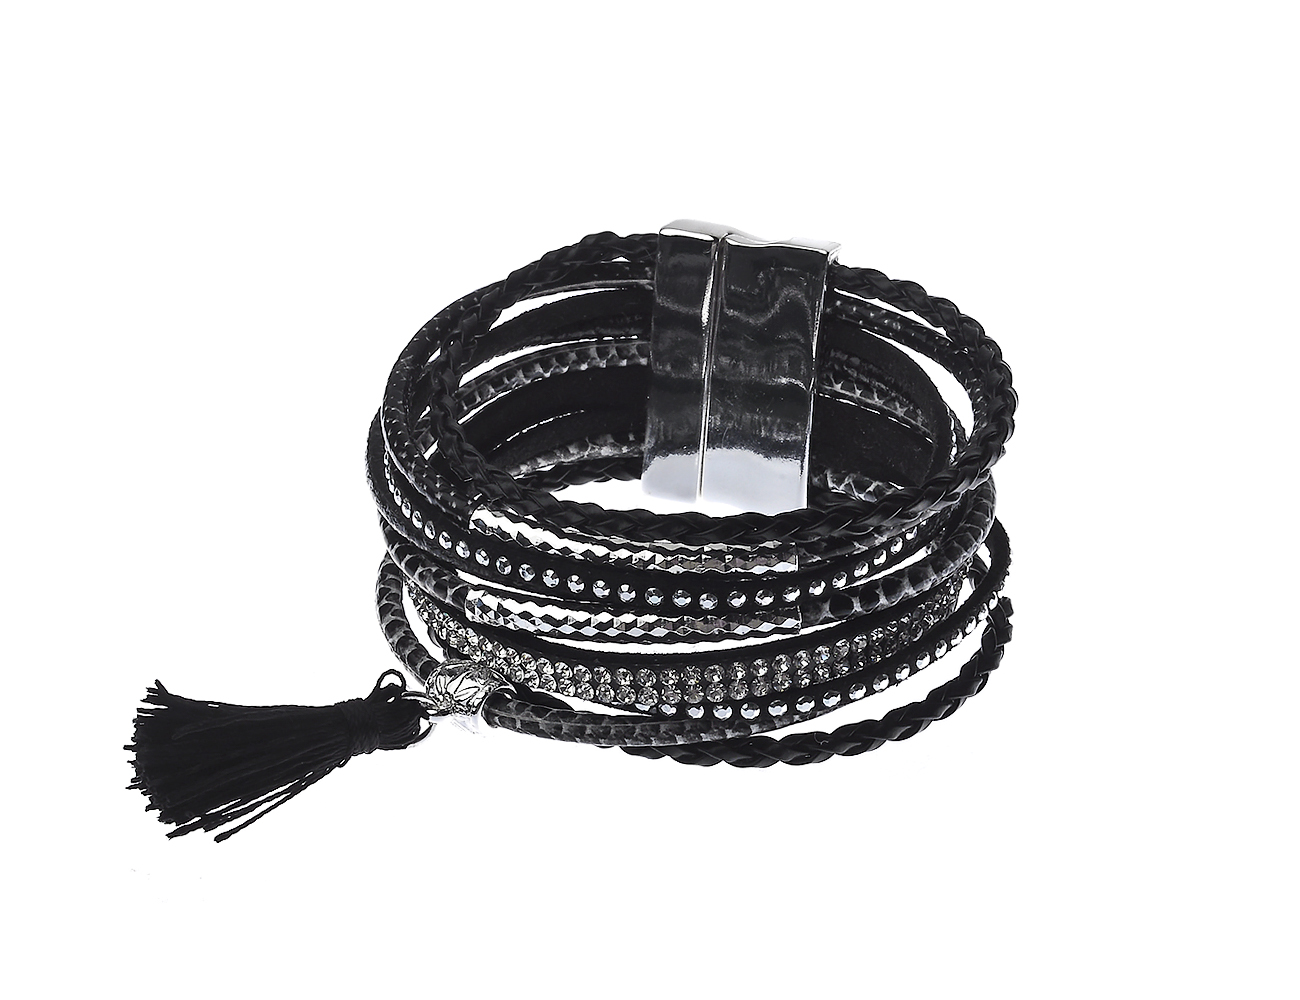 Multi Strand Leather Bracelet with Rhinestones, Silver bar & tassel